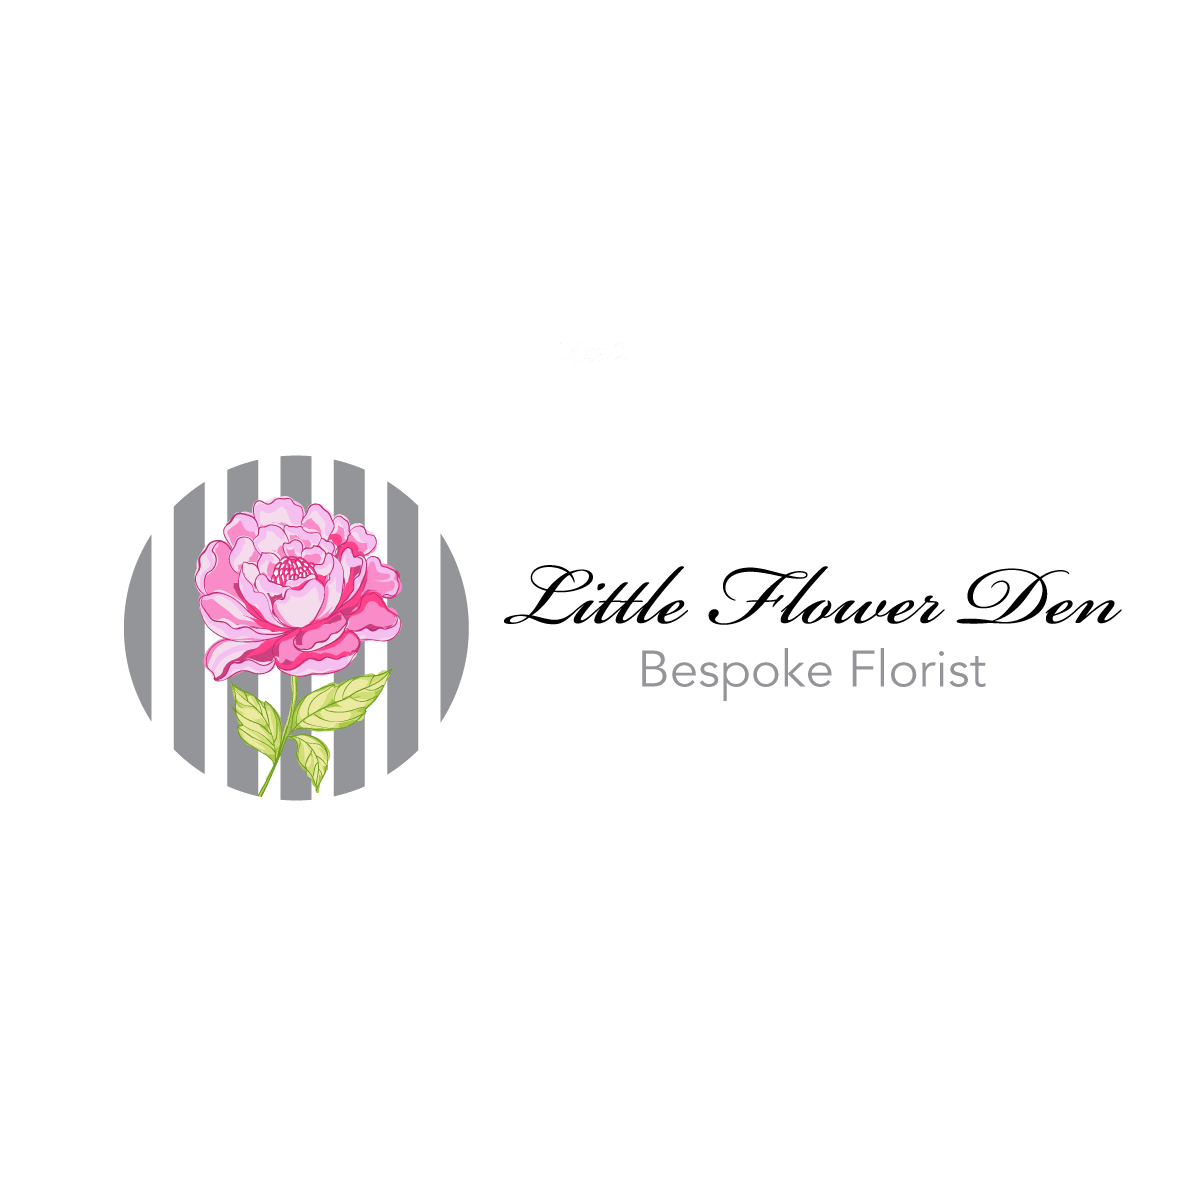 Little Flower Den - Cardiff, South Glamorgan CF15 8AA - 07554 663262 | ShowMeLocal.com